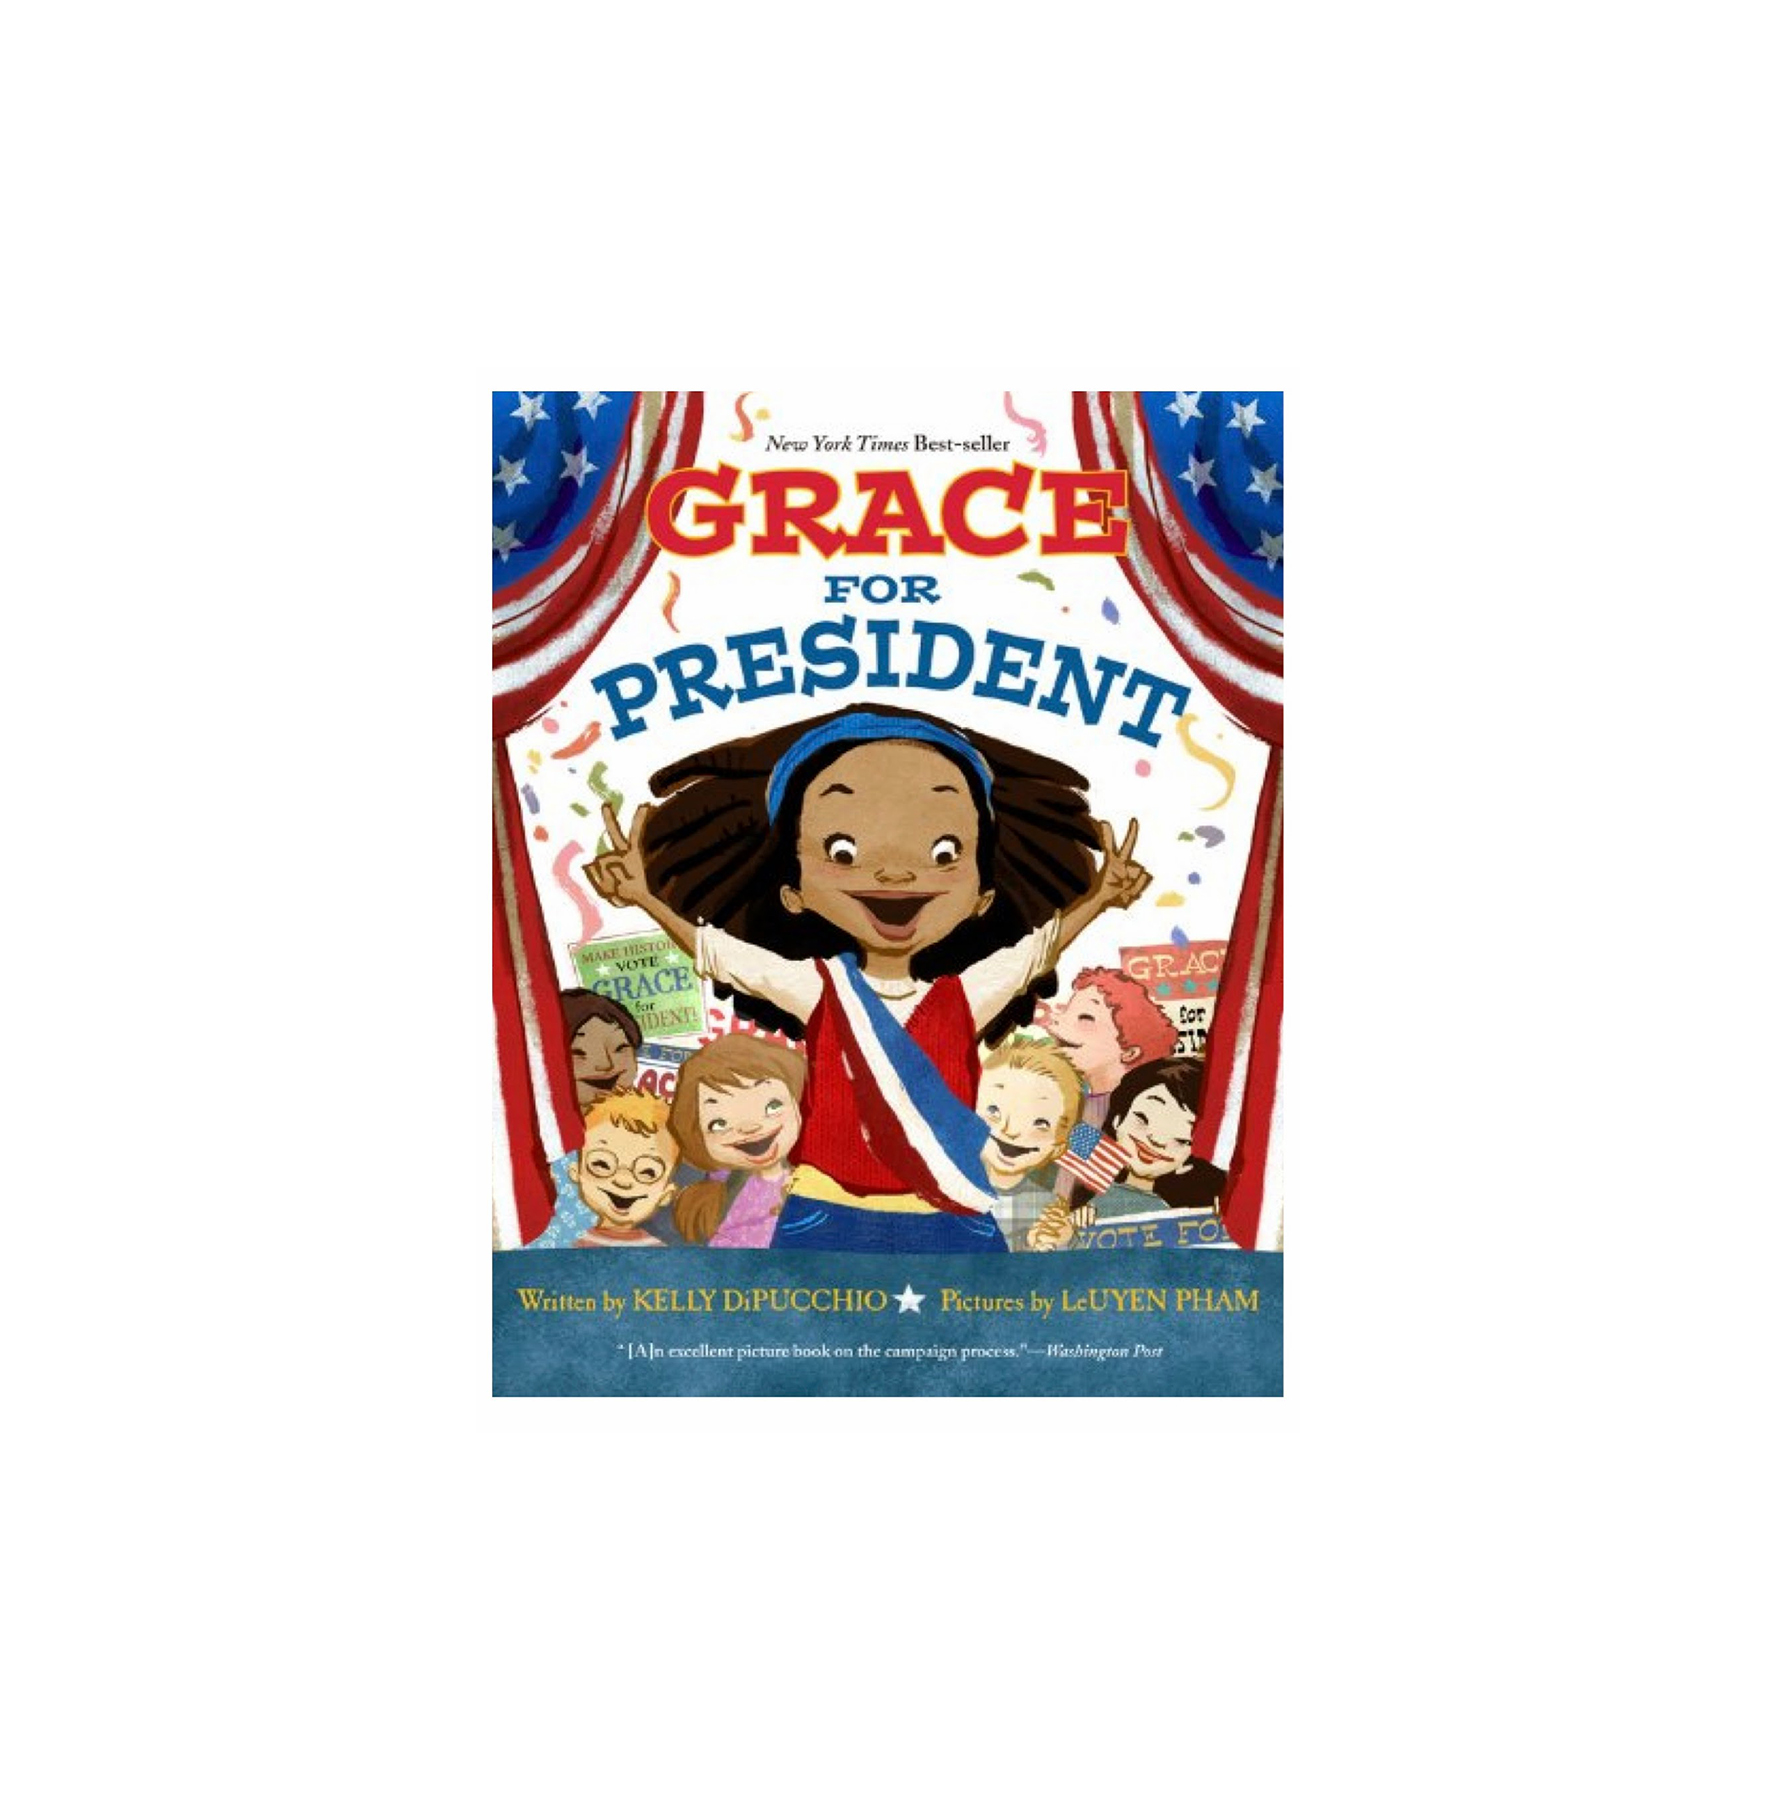 Grace for President, by Kelly DiPucchio